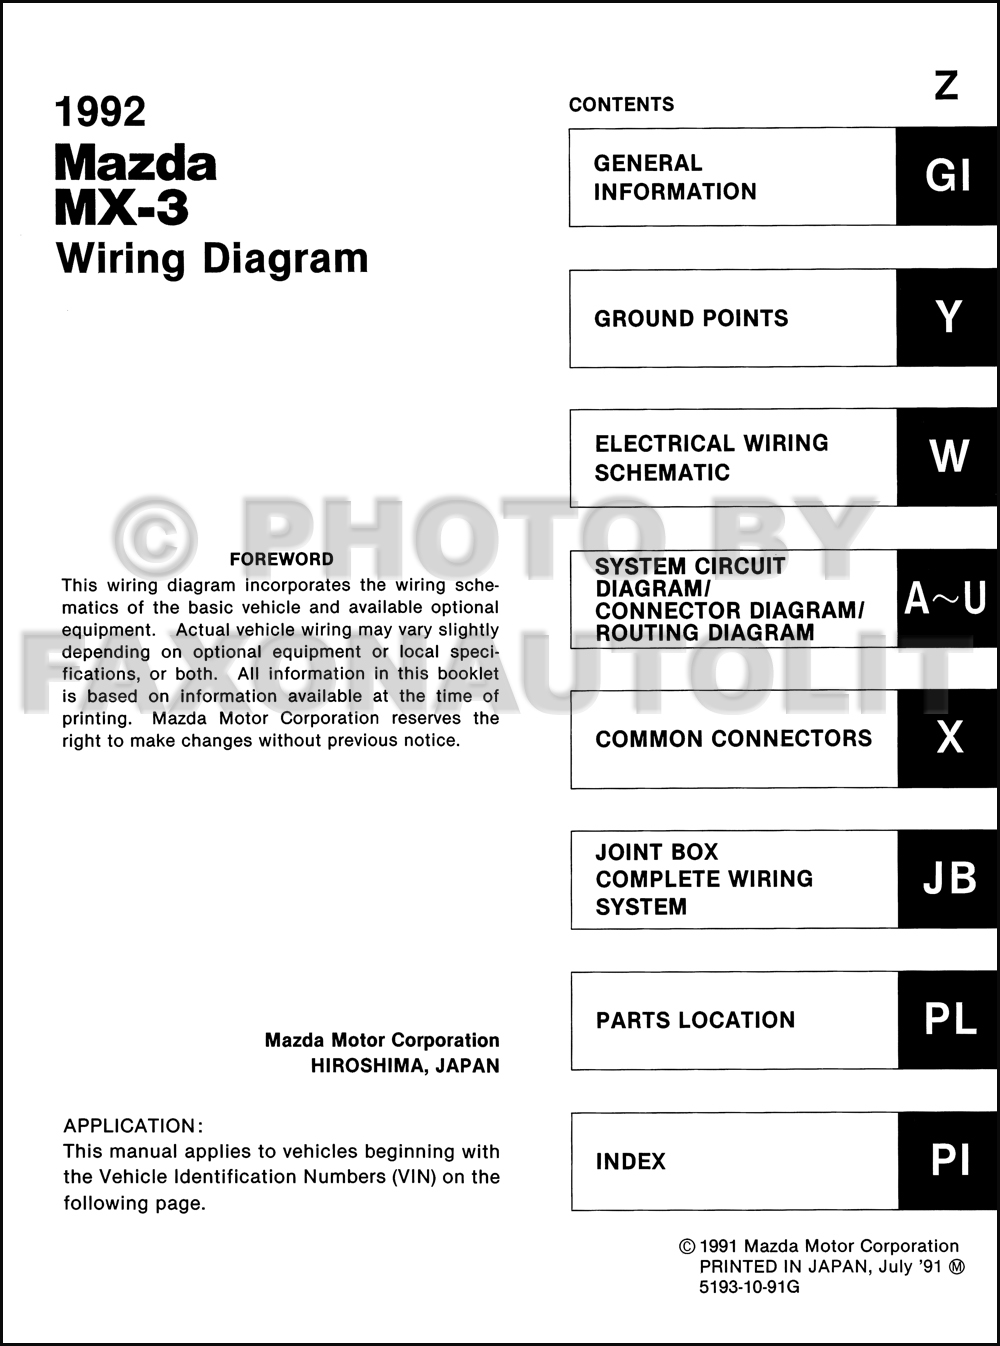 1992 Mazda MX-3 Wiring Diagram Manual Original. click on thumbnail to zoom